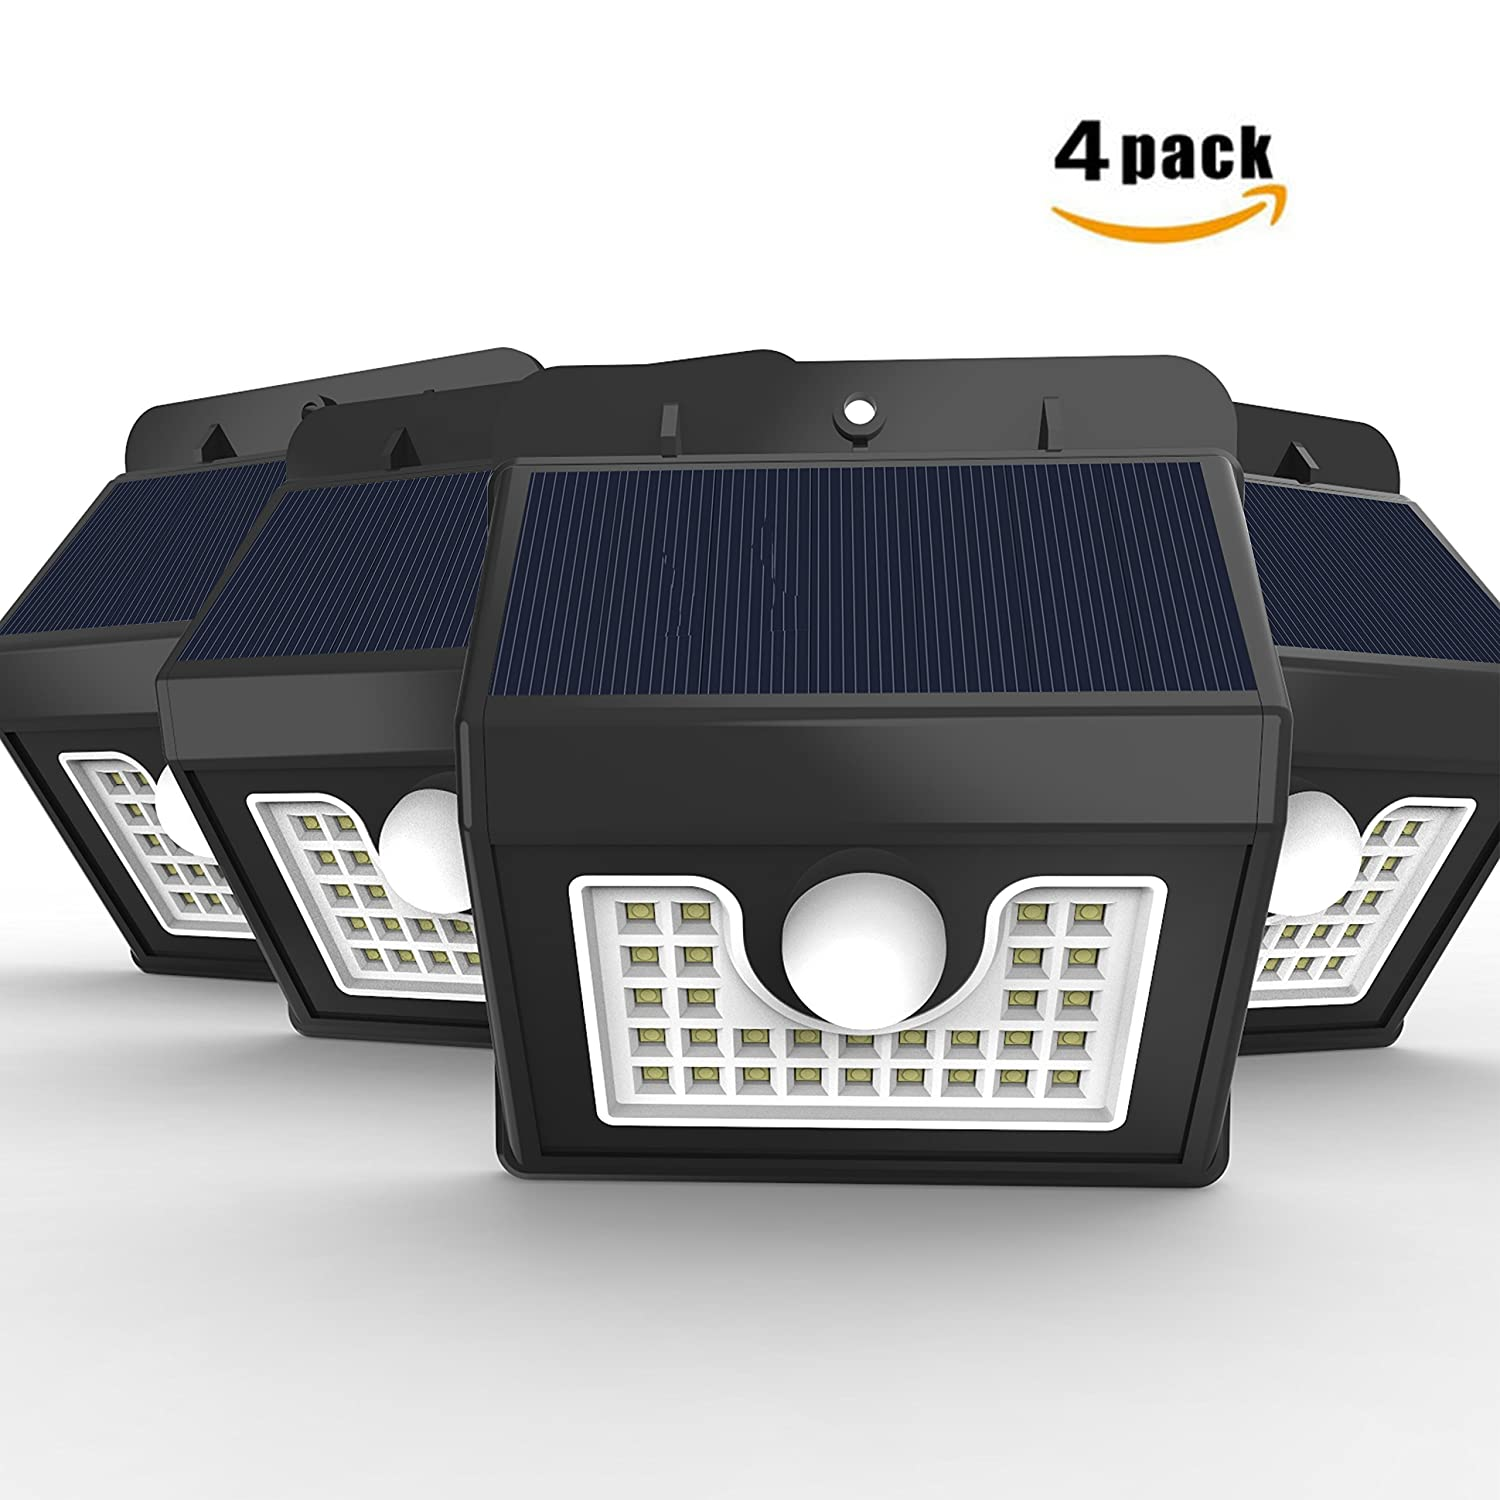 Led Spotlight Bulbs Amazon: Best Solar Flood Lights: Buying Guide And Reviews